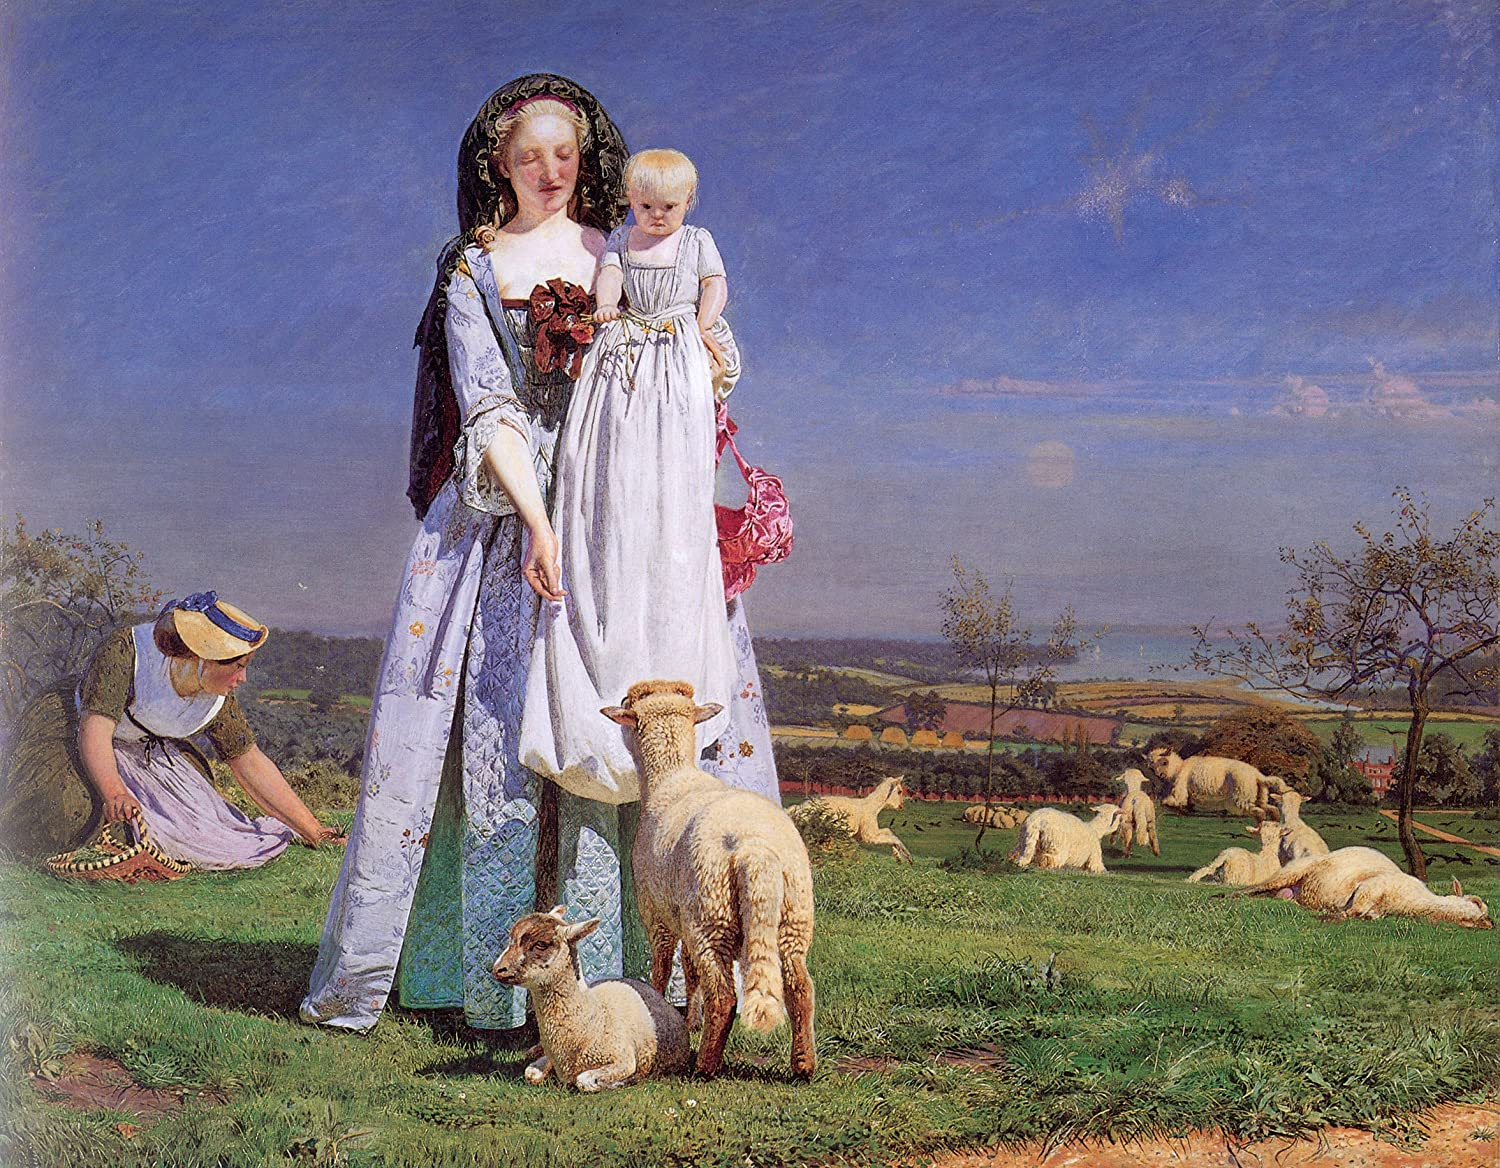 The Pretty Baa Lambs By Ford Madox Brown 20 X 25 Premium Canvas Print Posters Prints